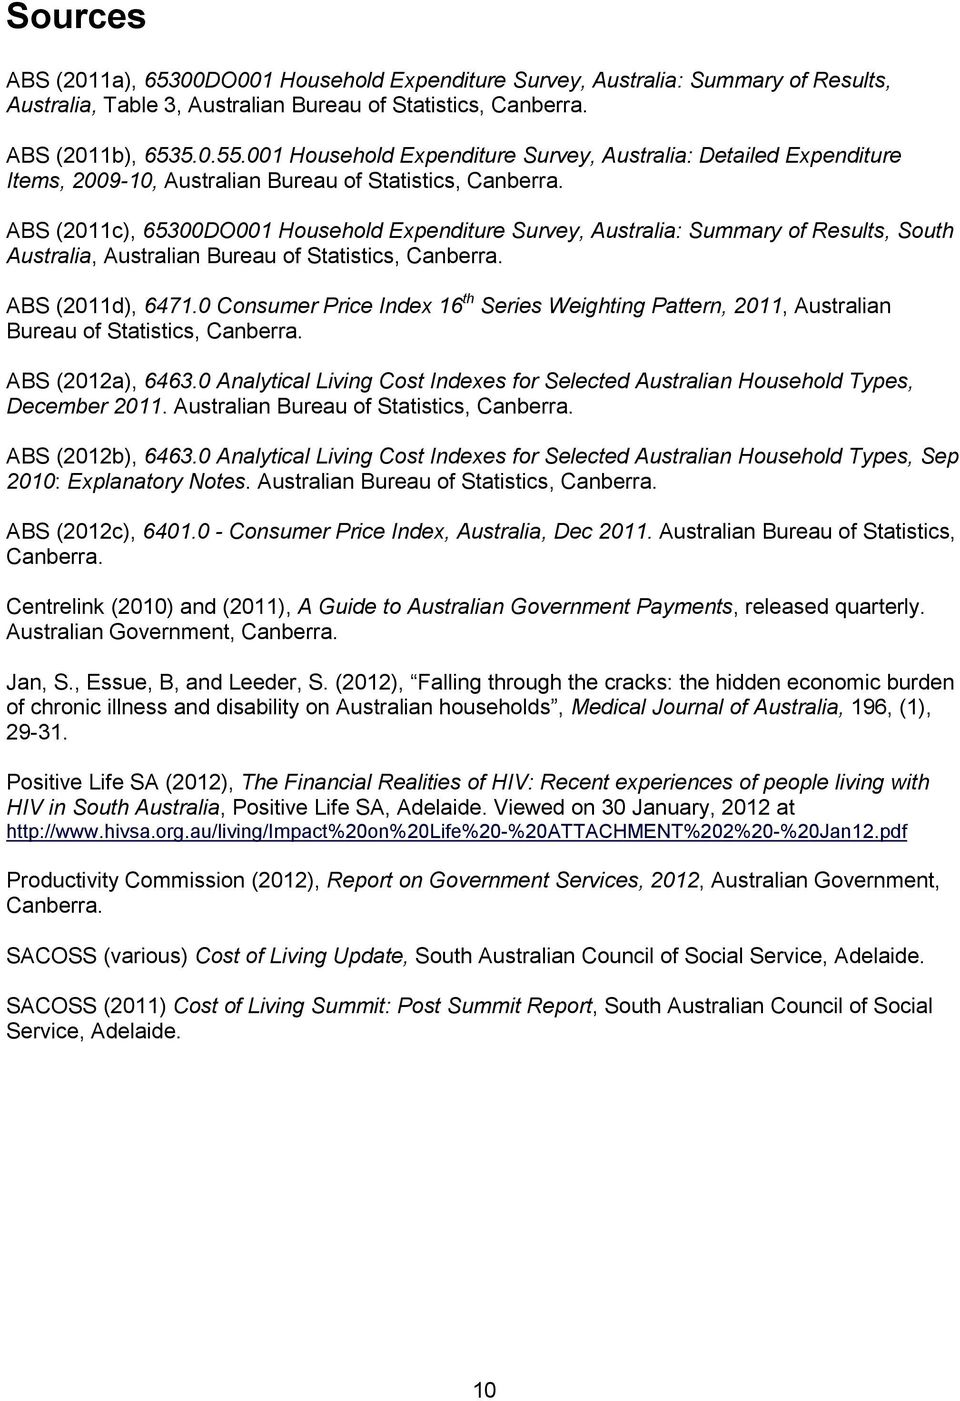 ABS (2011c), 65300DO001 Household Expenditure Survey, Australia: Summary of Results, South Australia, Australian Bureau of Statistics, Canberra. ABS (2011d), 6471.